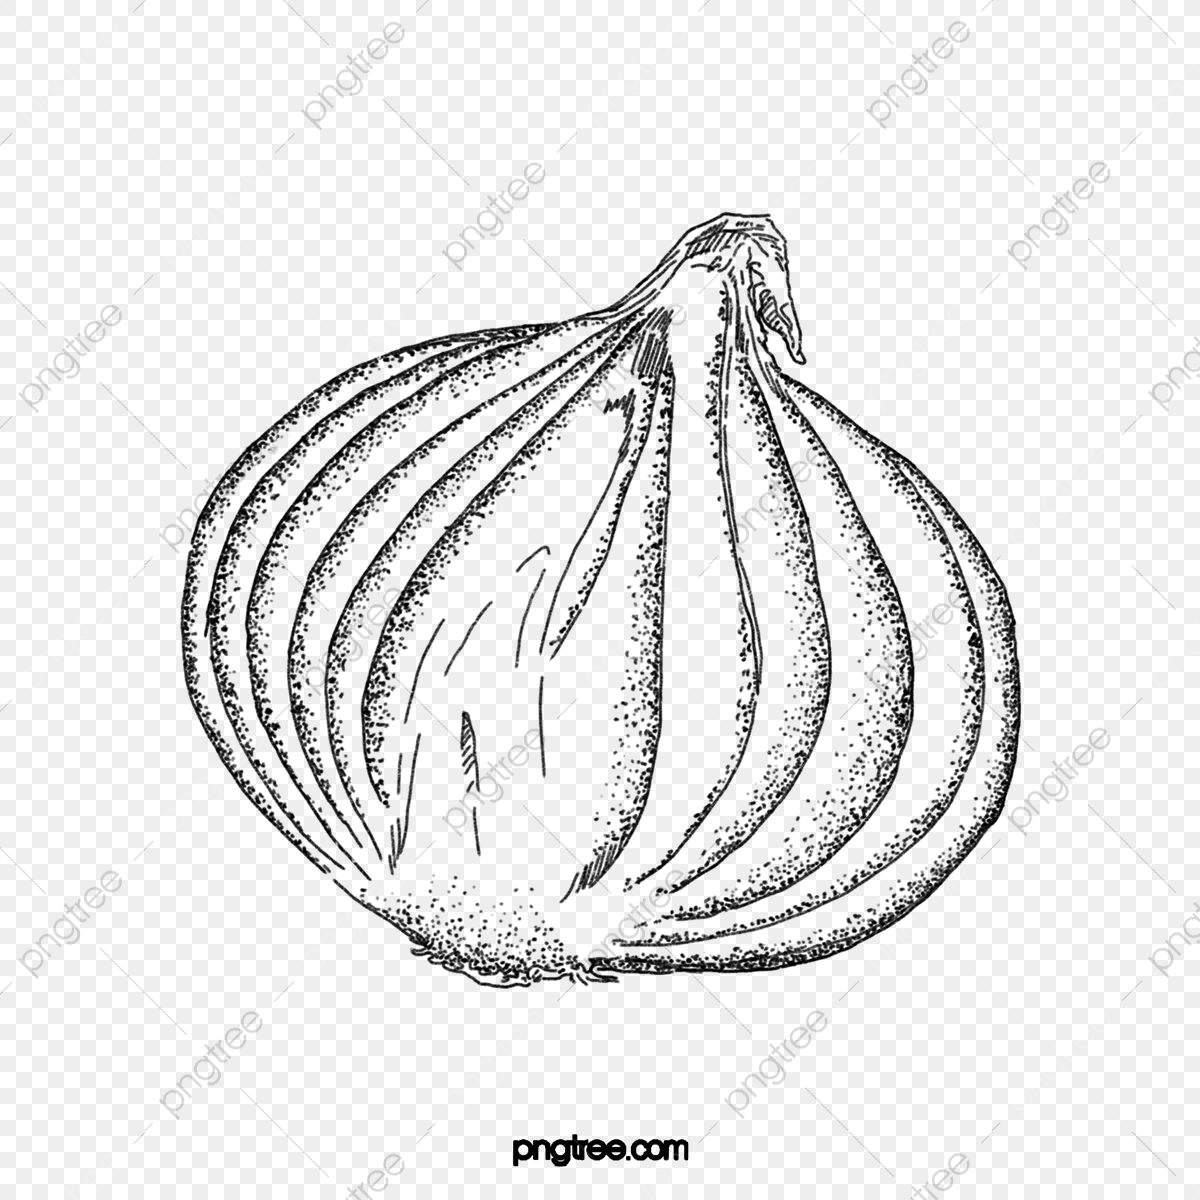 Black And White Flower 541*800 transprent Png Free Download - Black And  White , Plant, Line Art. - CleanPNG / KissPNG